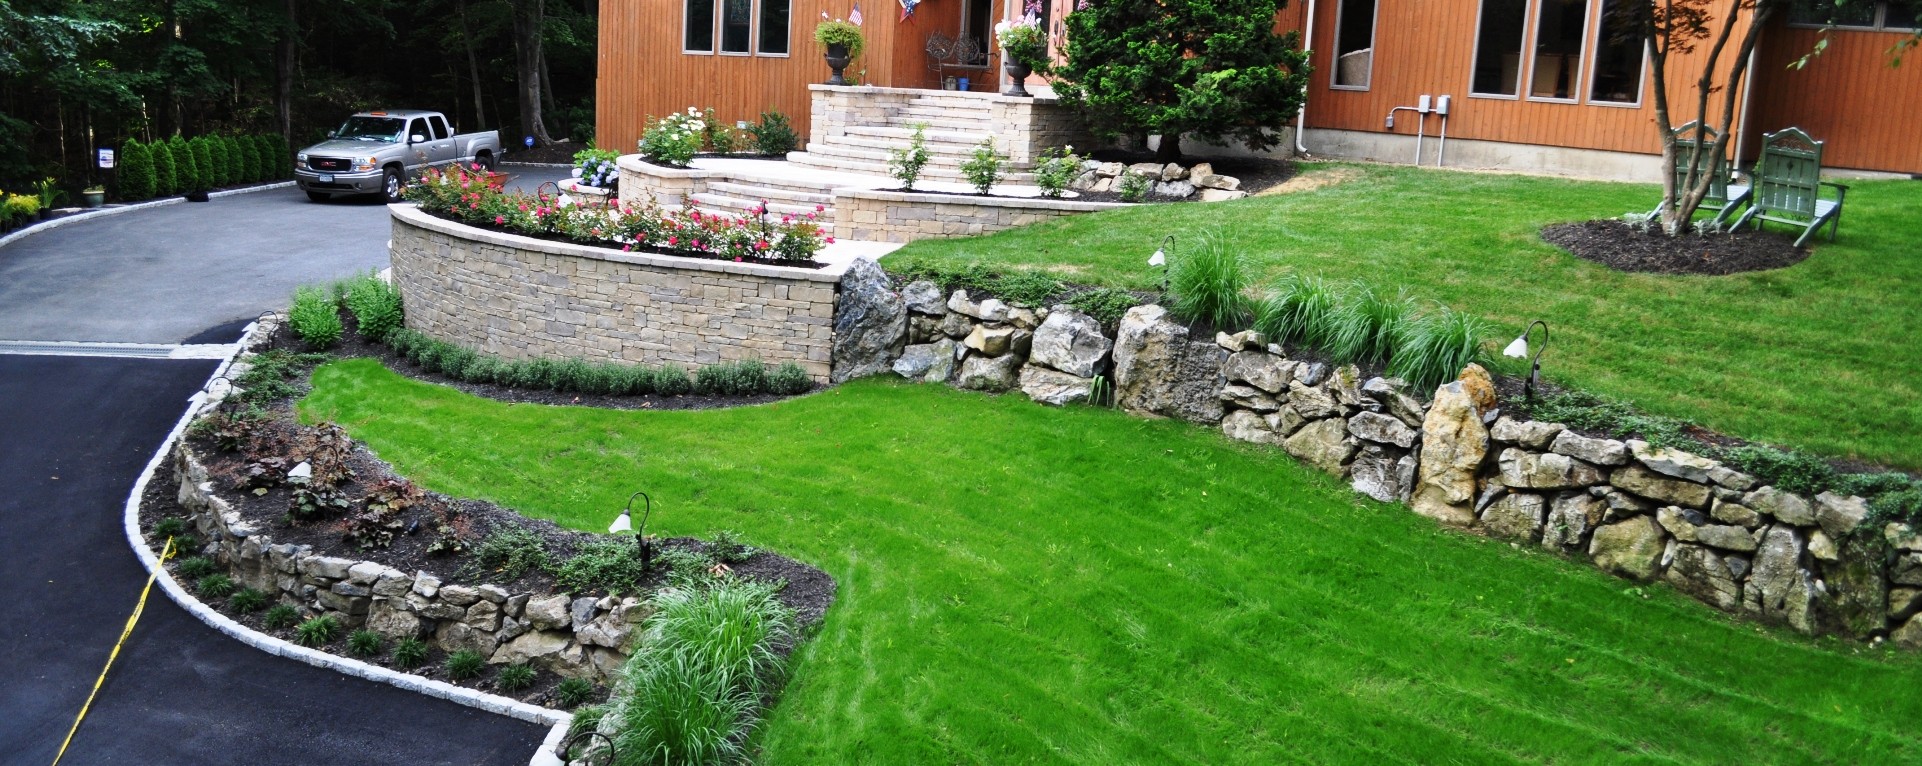 Lawn Care Maintenance Services Suffolk and Nassau County